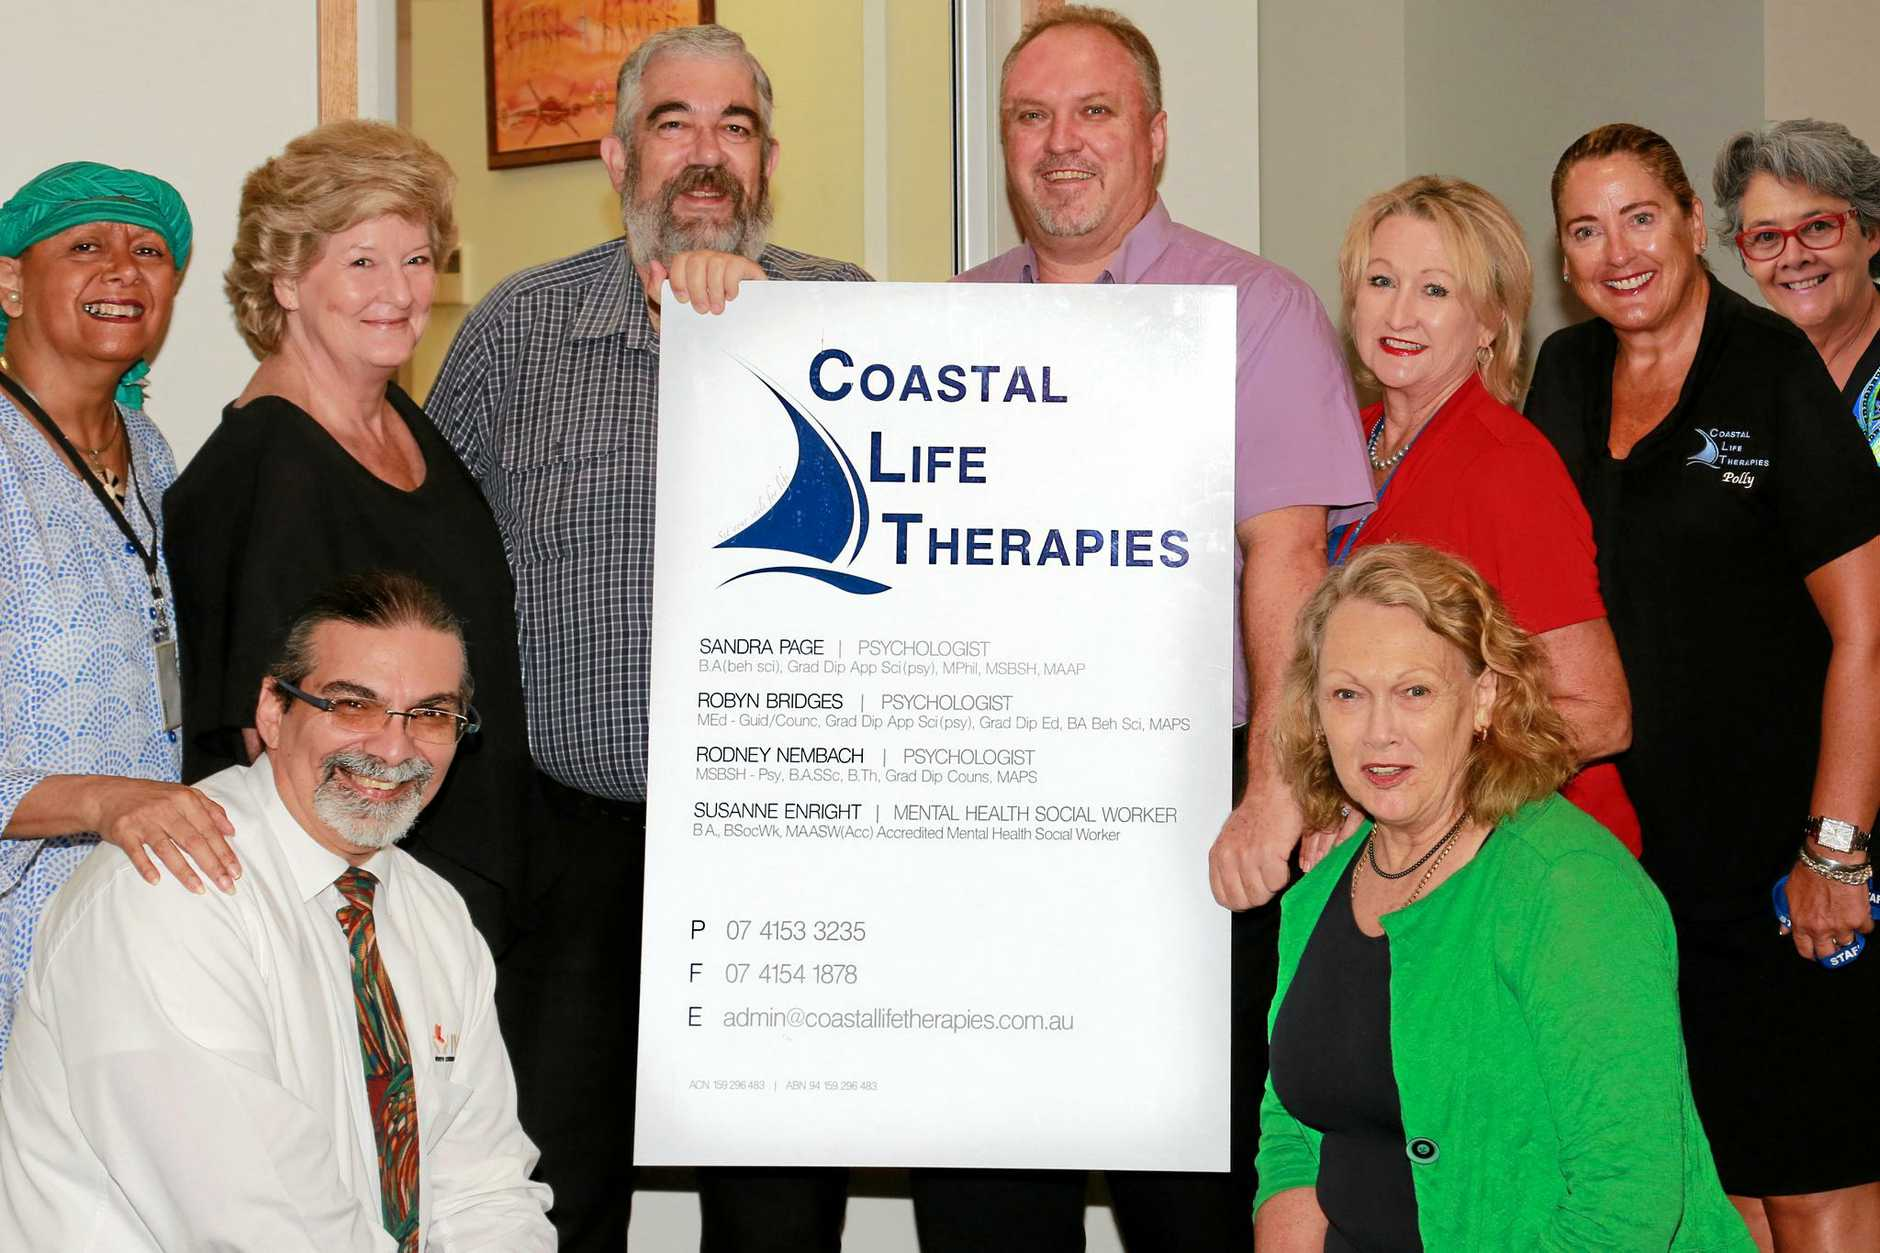 The Coastal Life Therapies team in their new premises at IWC Health & Wellbeing Centre.